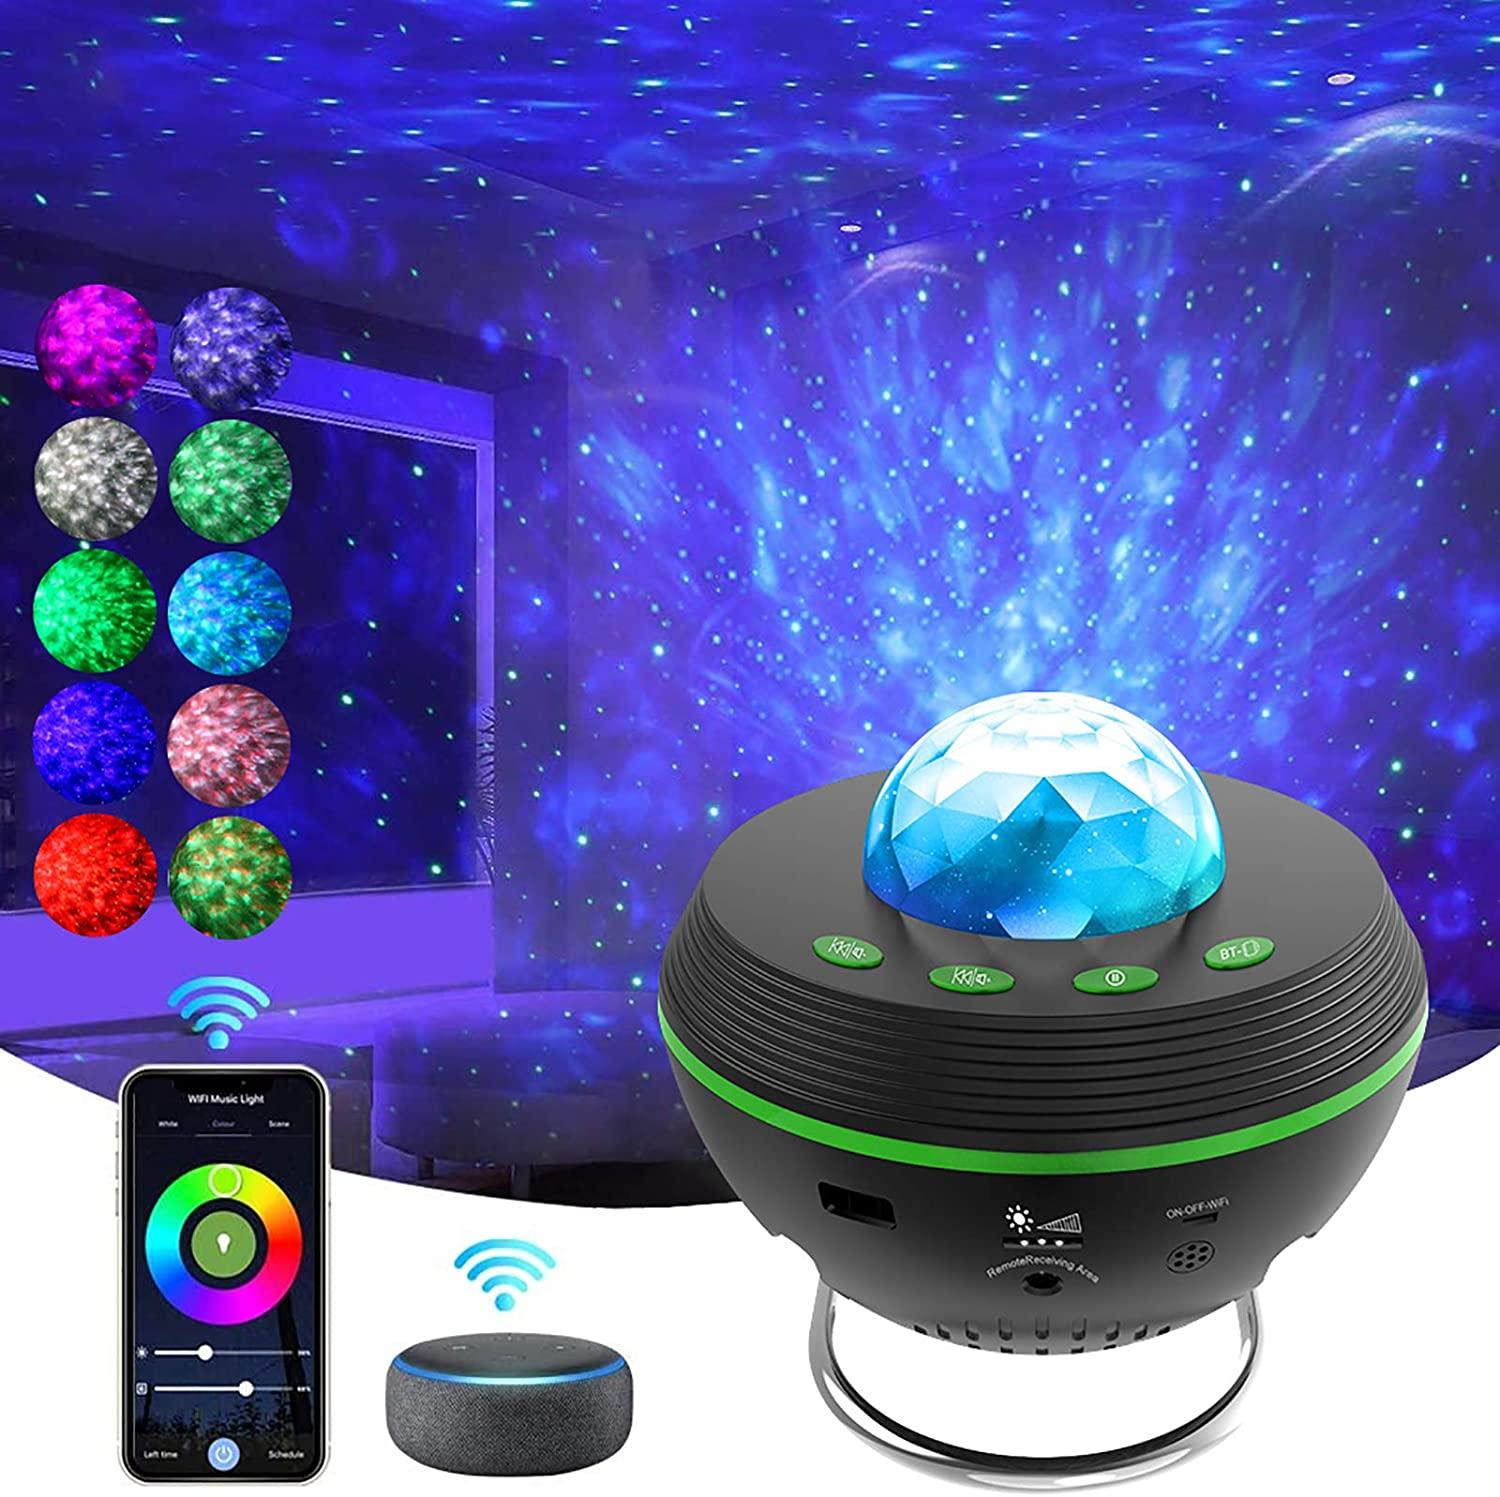 KOSPET Star Projector, Ocean Weave Night Light Projector with Bluetooth Speaker, Smart Voice Control Compatible with Alexa & Google Home, Perfect for Bedroom Home Ceiling Theatre Baby Kids Adults